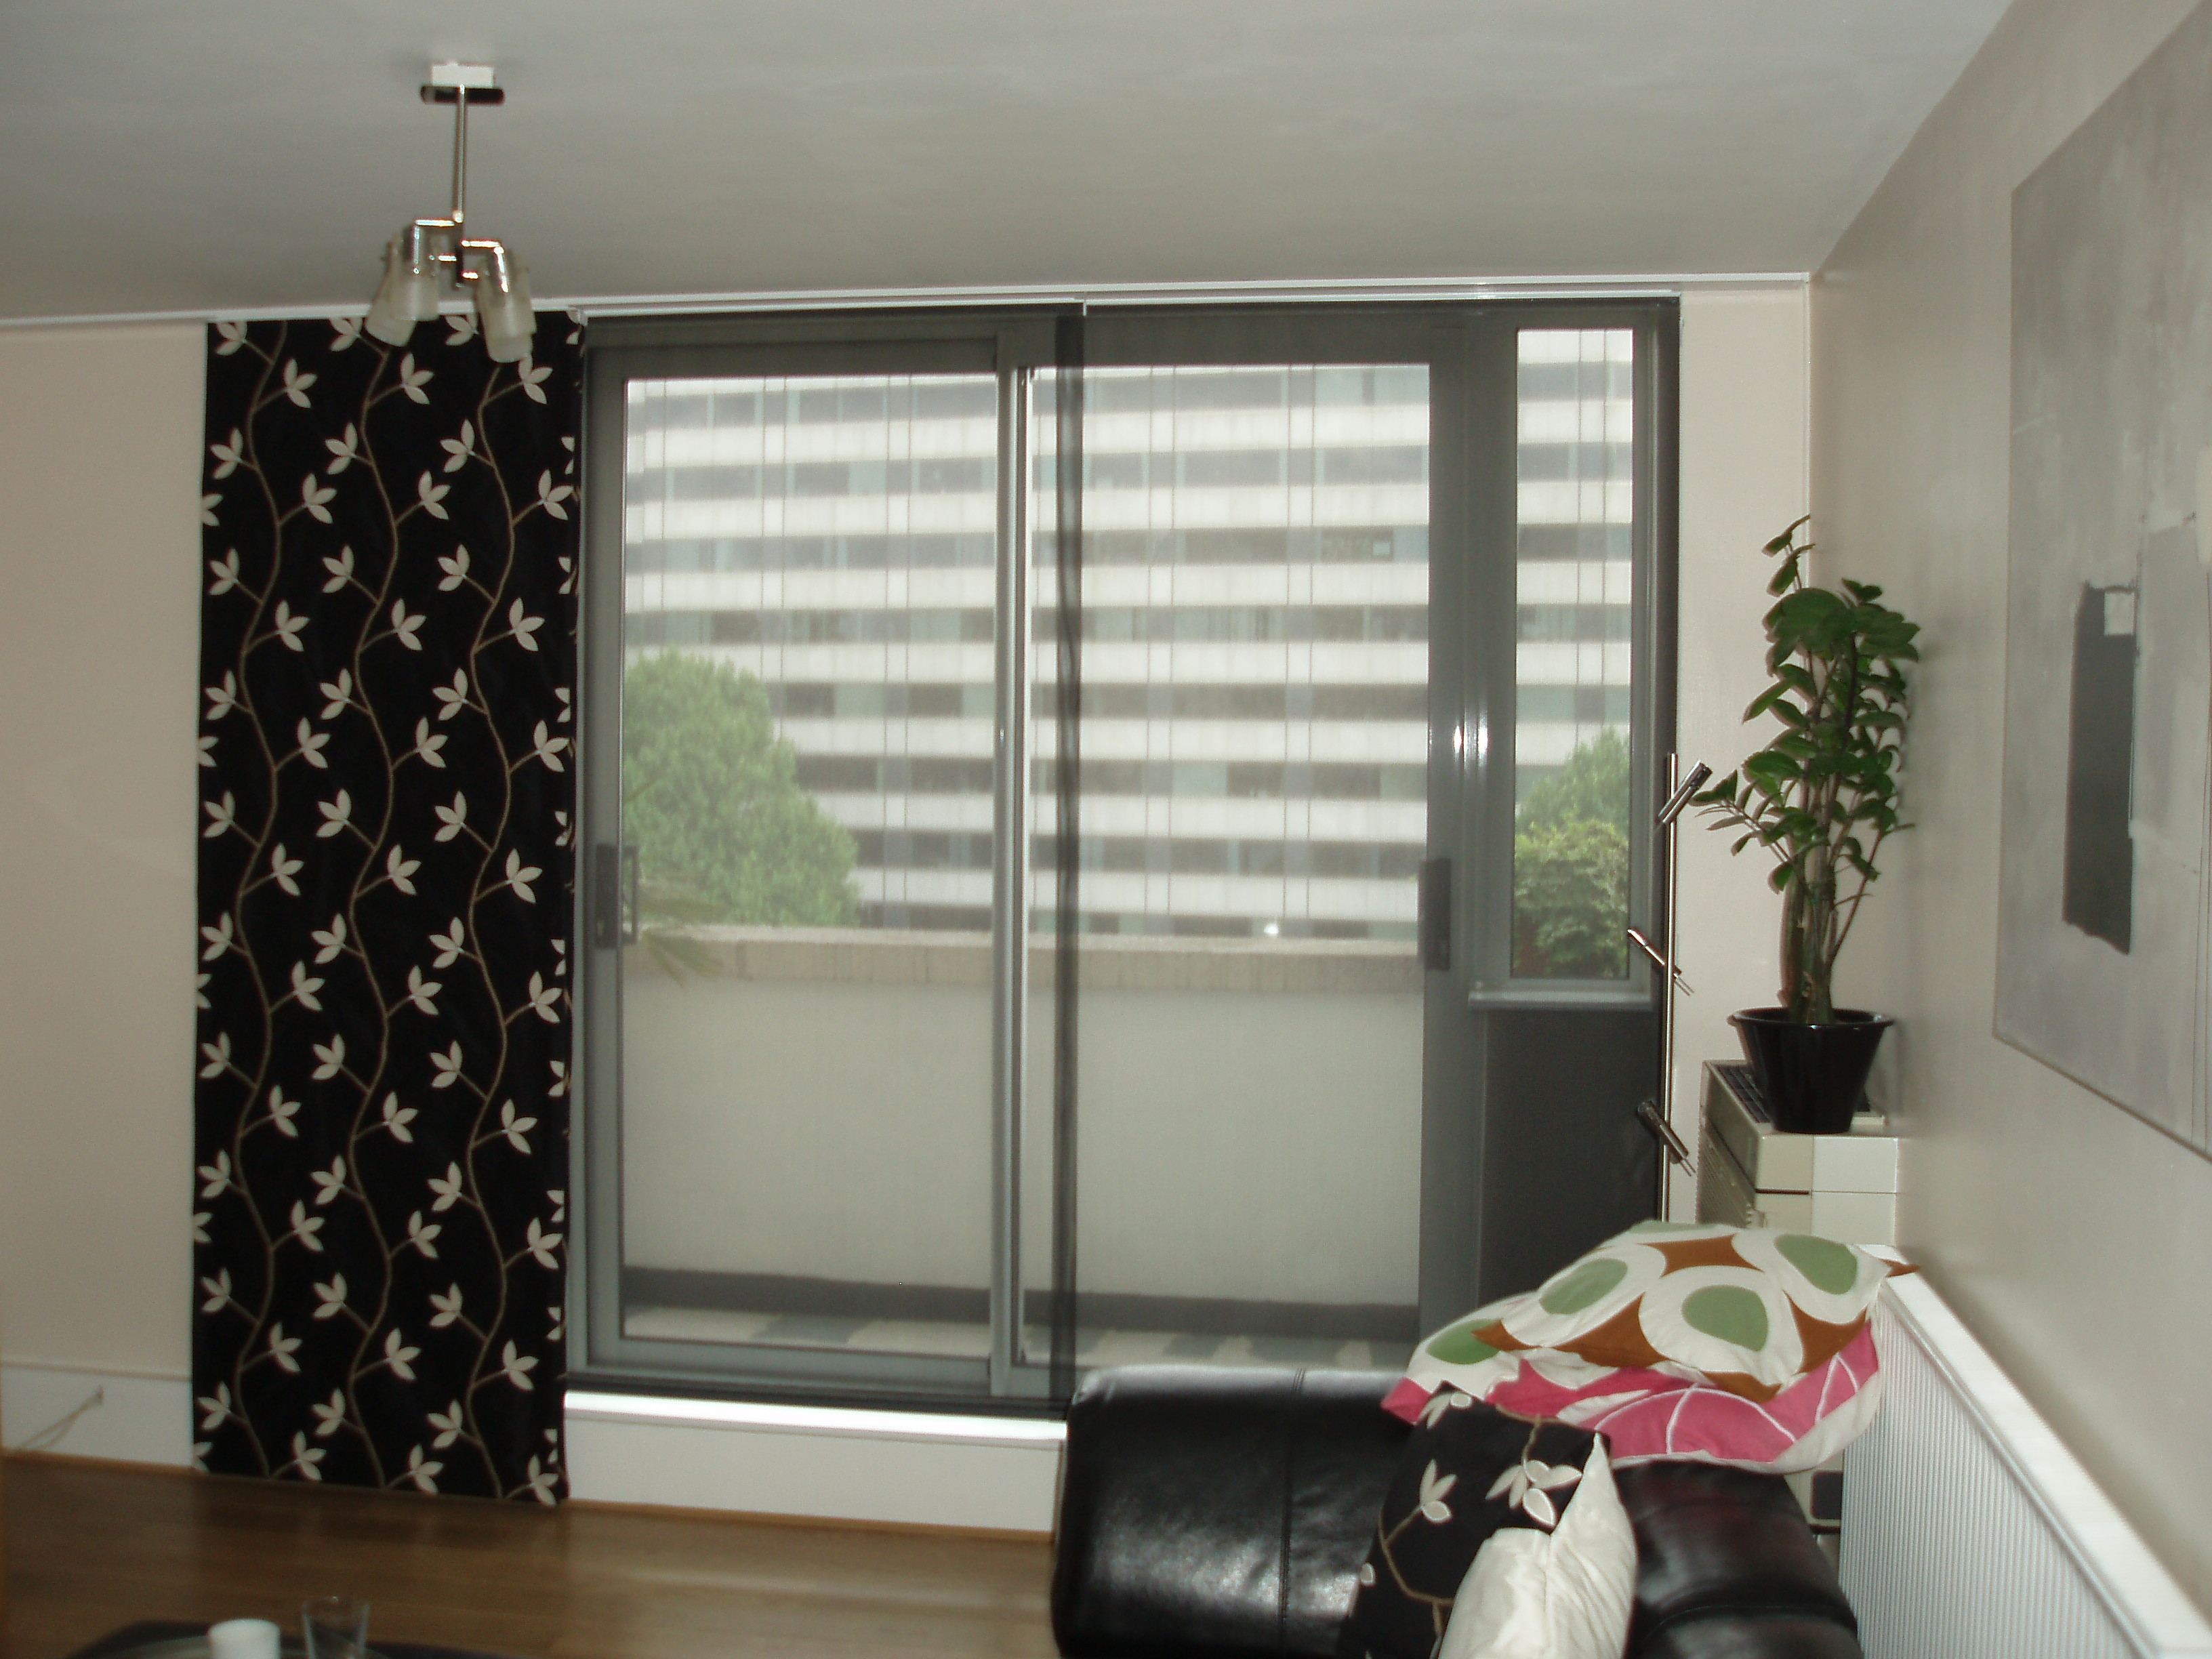 panel blind interior designs glass frame stained shutter doors gray venetian blinds sliding built in patio sunroom shade door french wooden white for